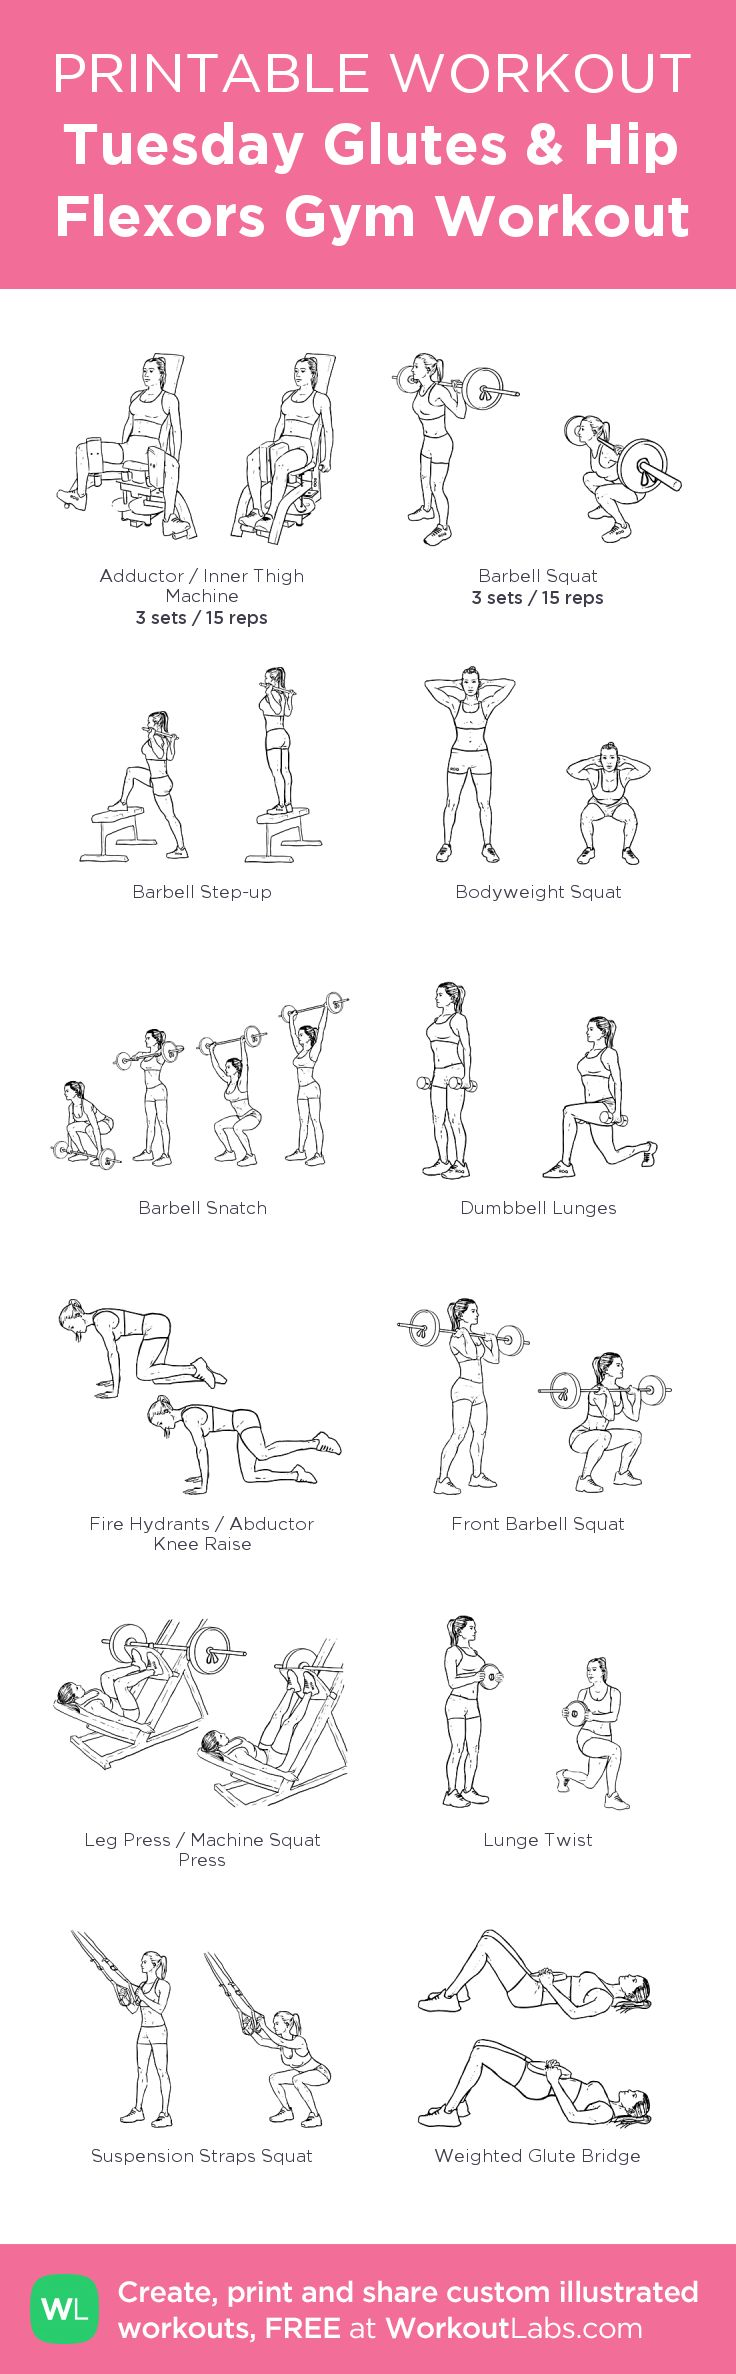 Tuesday Glutes & Hip Flexors Gym Workout: my visual workout created at WorkoutLabs.com • Click through to customize and download as a FREE PDF! #customworkout